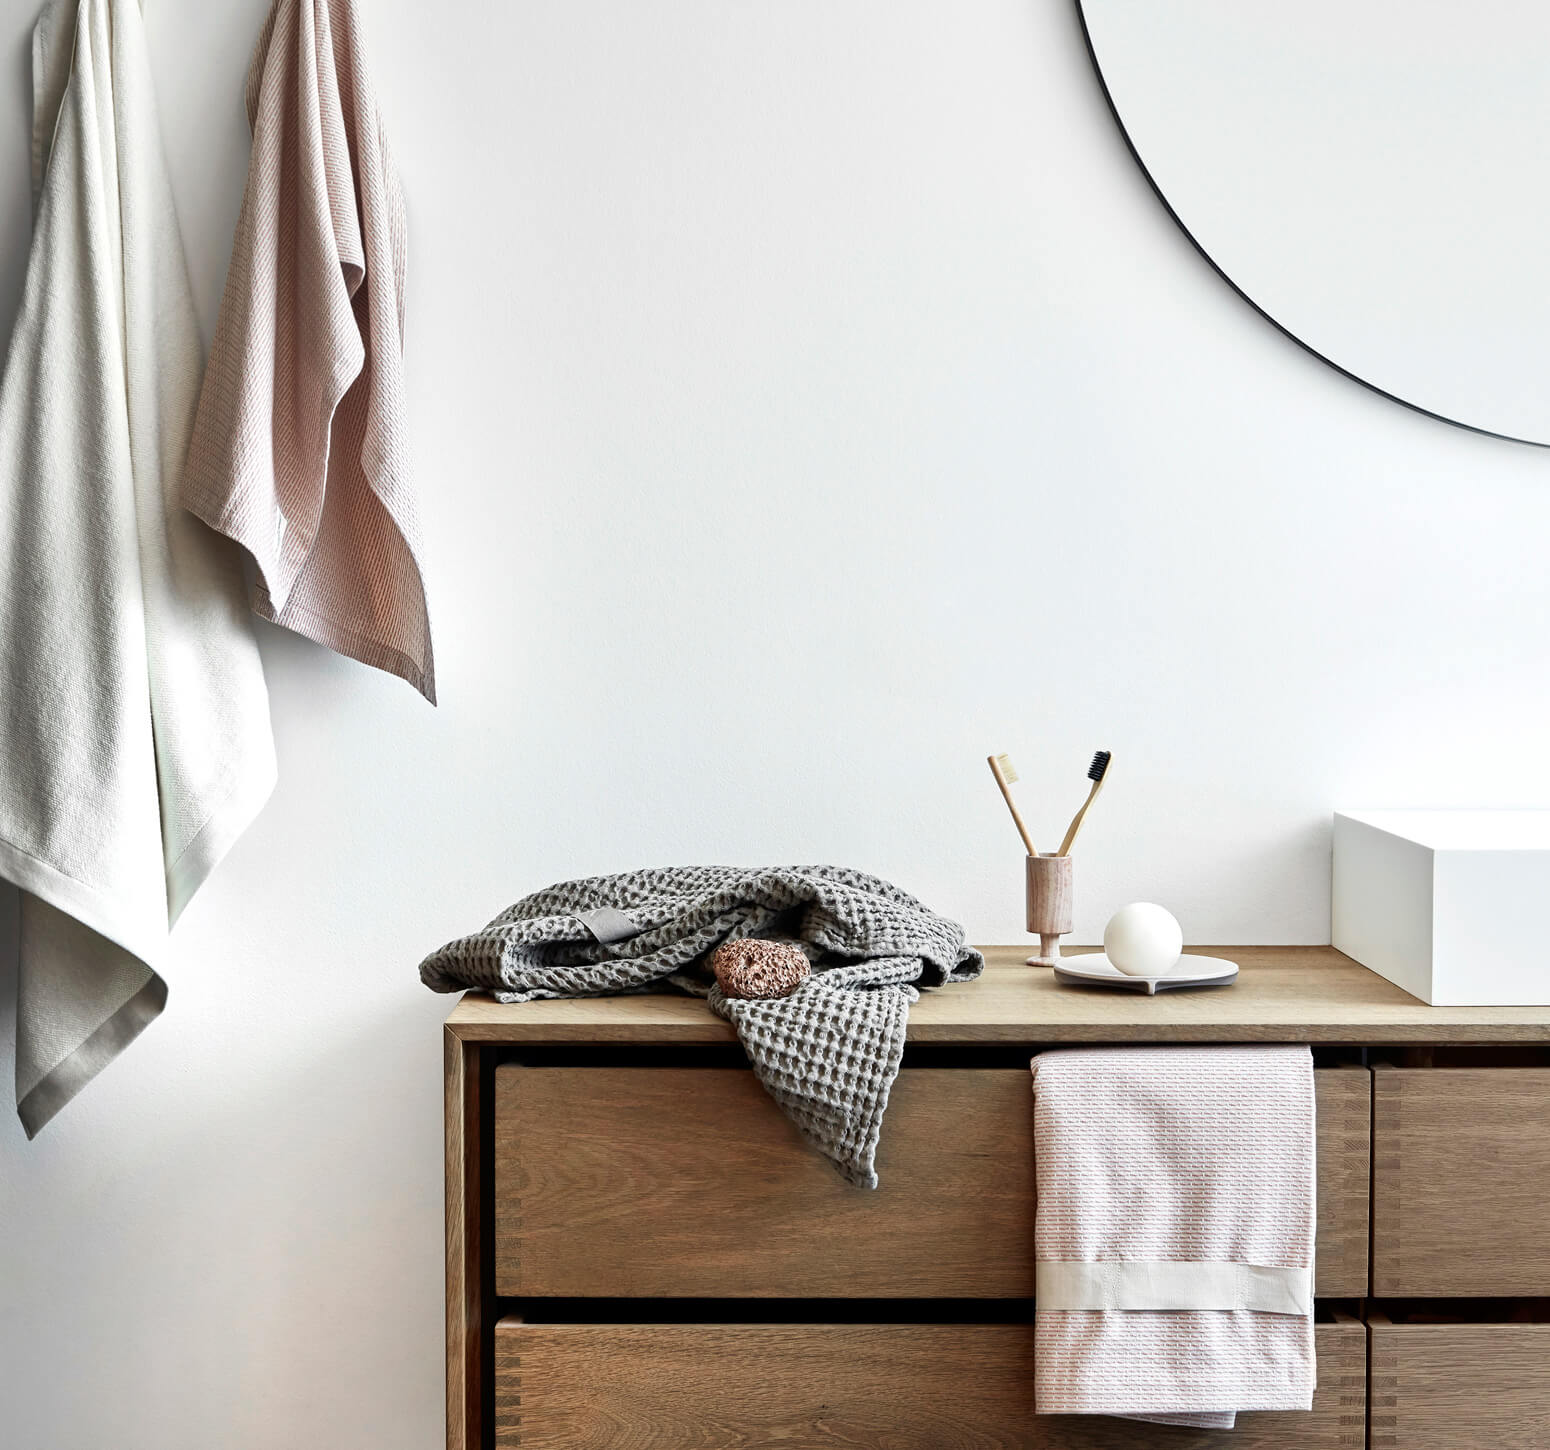 Home and bath towels, blankets and more by The Organic Company. Earthy and minimalist Scandinavian colours.